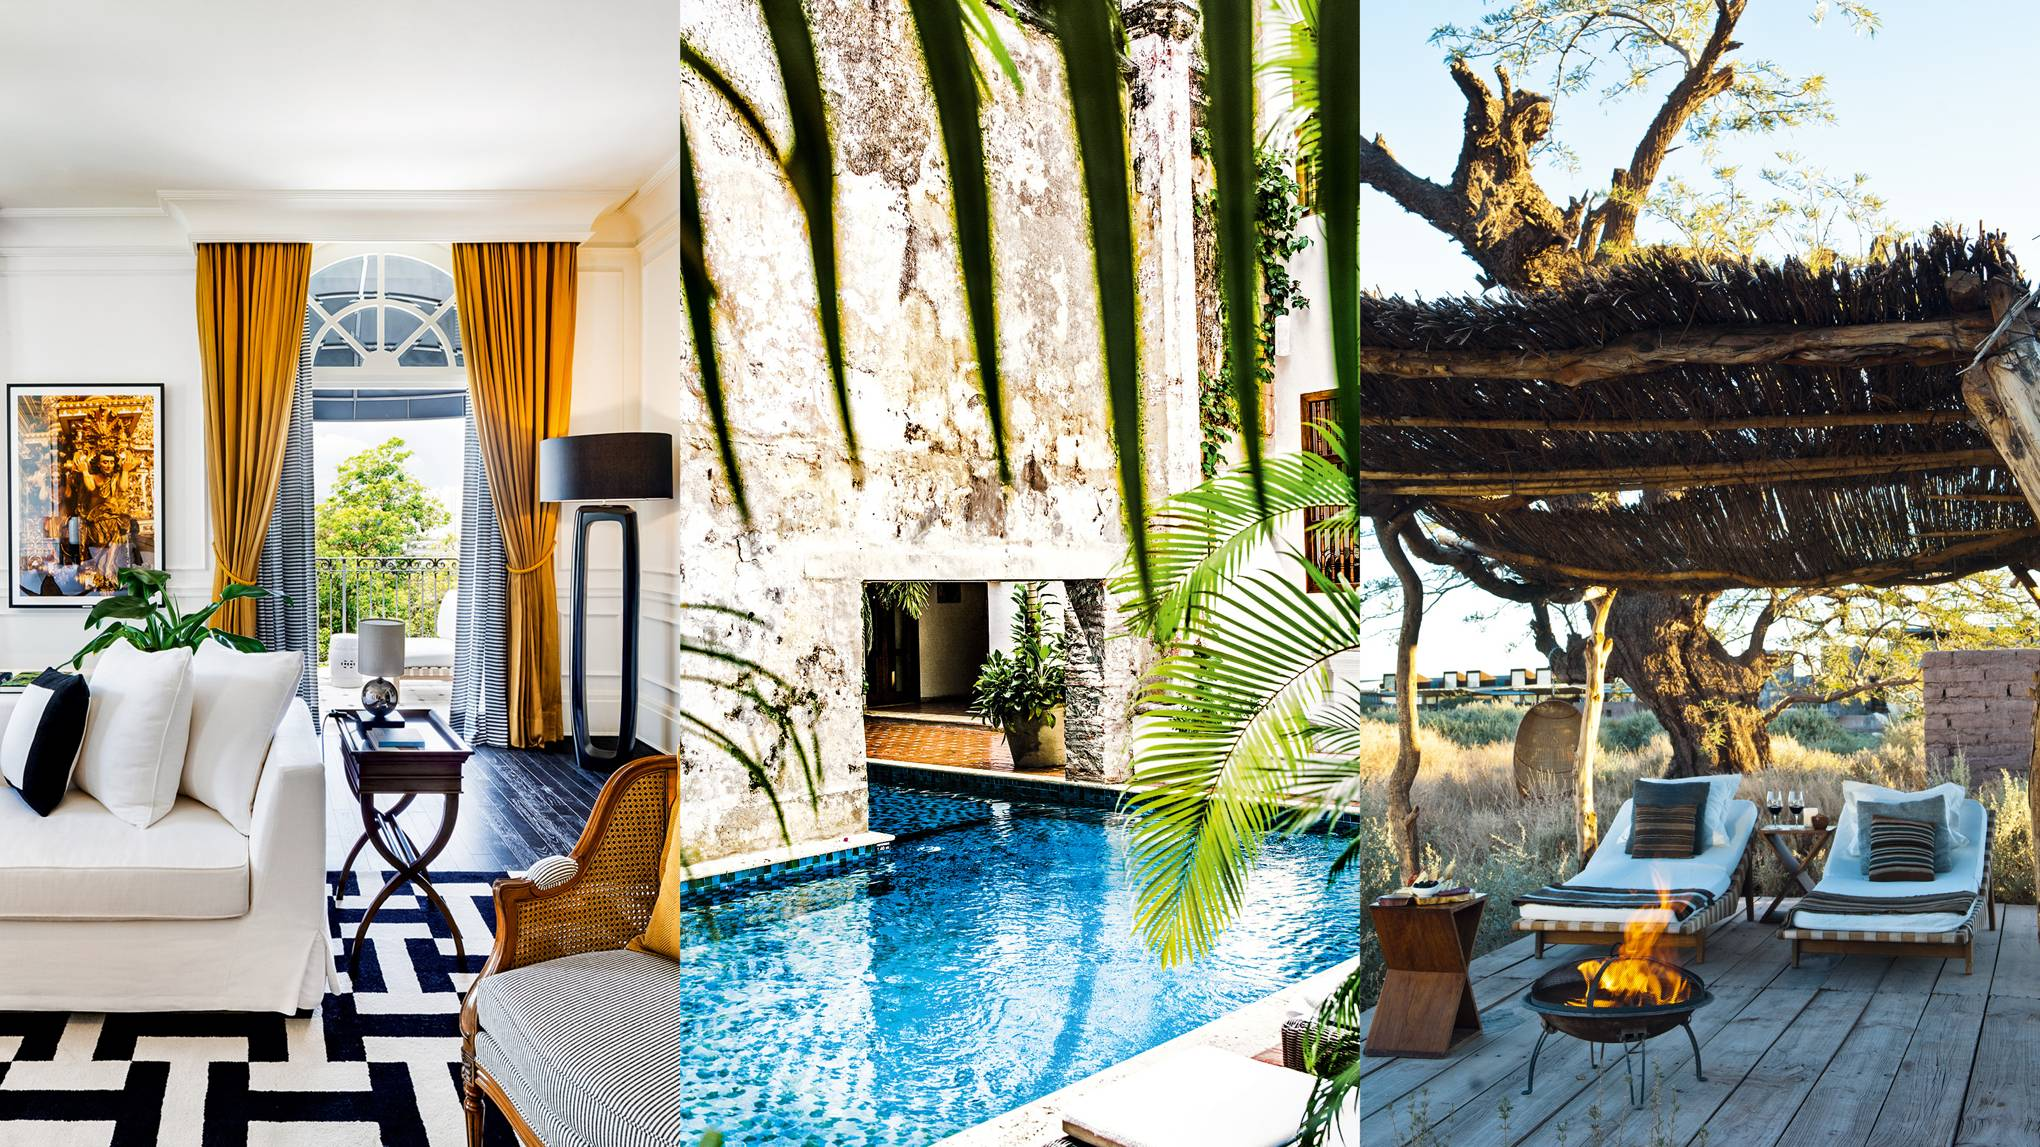 The best hotels in Mexico and South America: the Gold List 2020